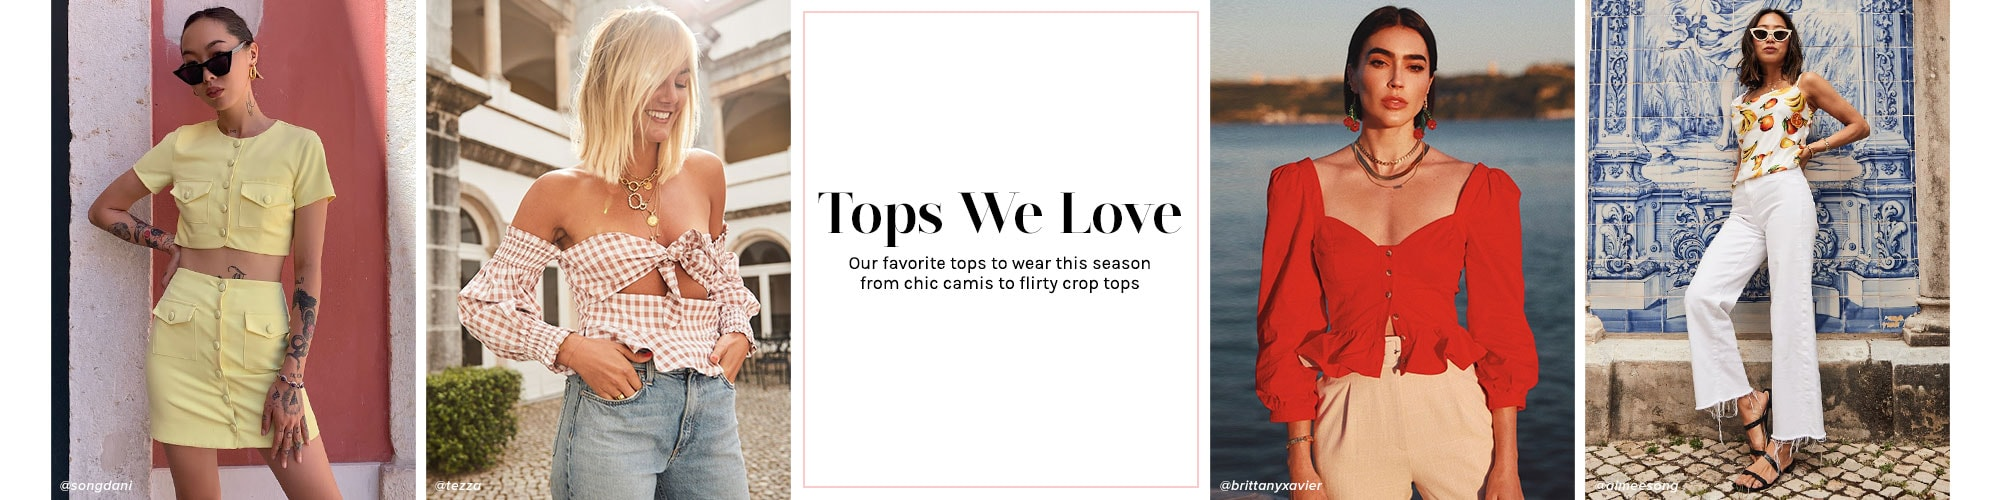 Tops We Love. Our favorite tops to wear this season from chic camis to flirty crop tops.